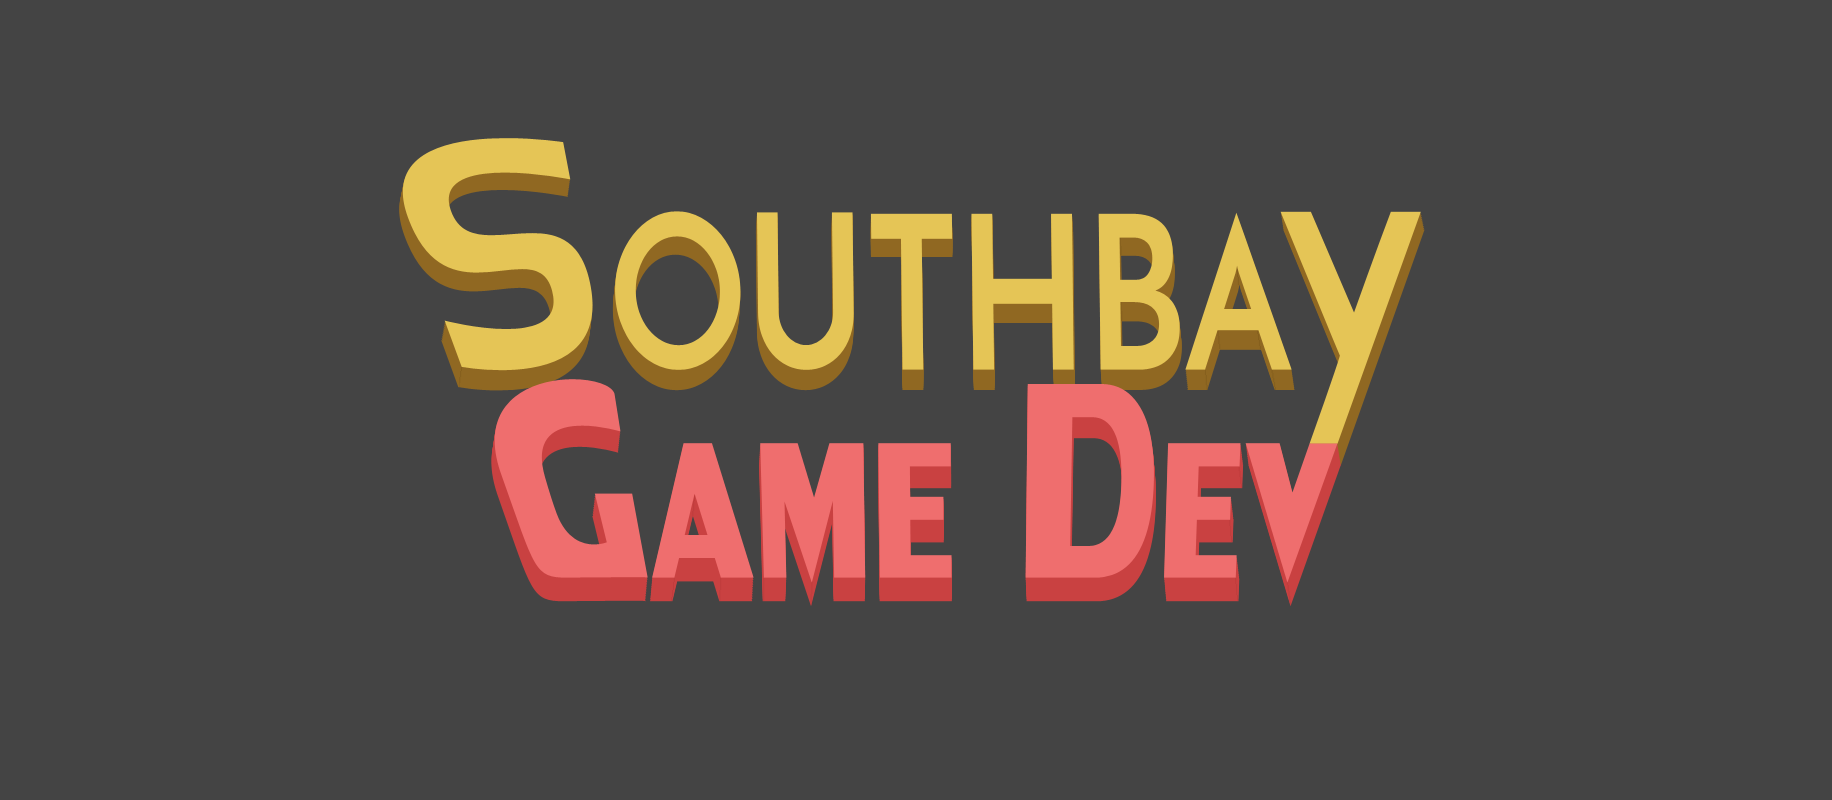 southbay-gamedevelopment-group-logo.png